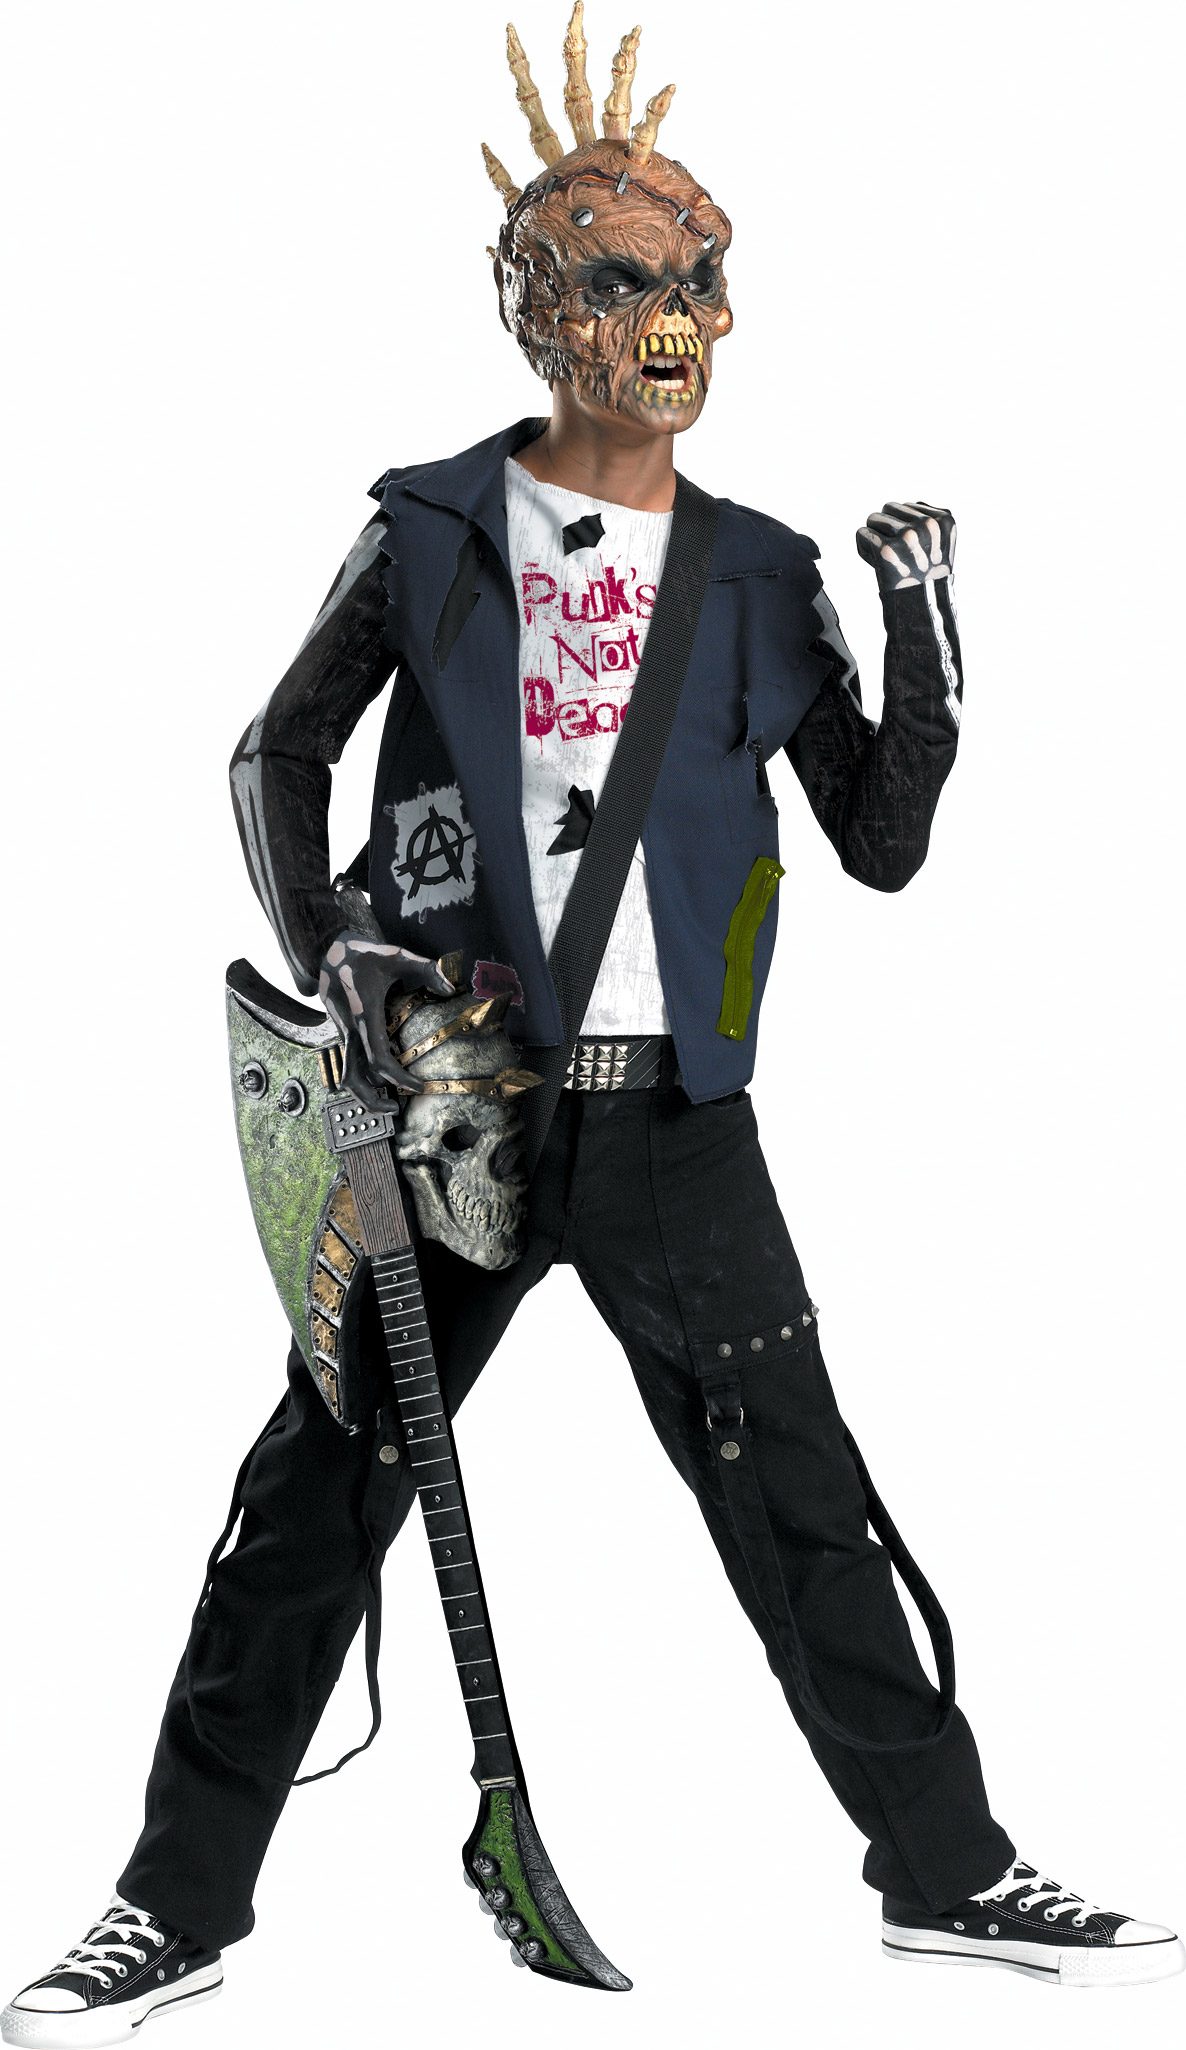 boys punk creep child halloween scary costume fancy dress party outfit